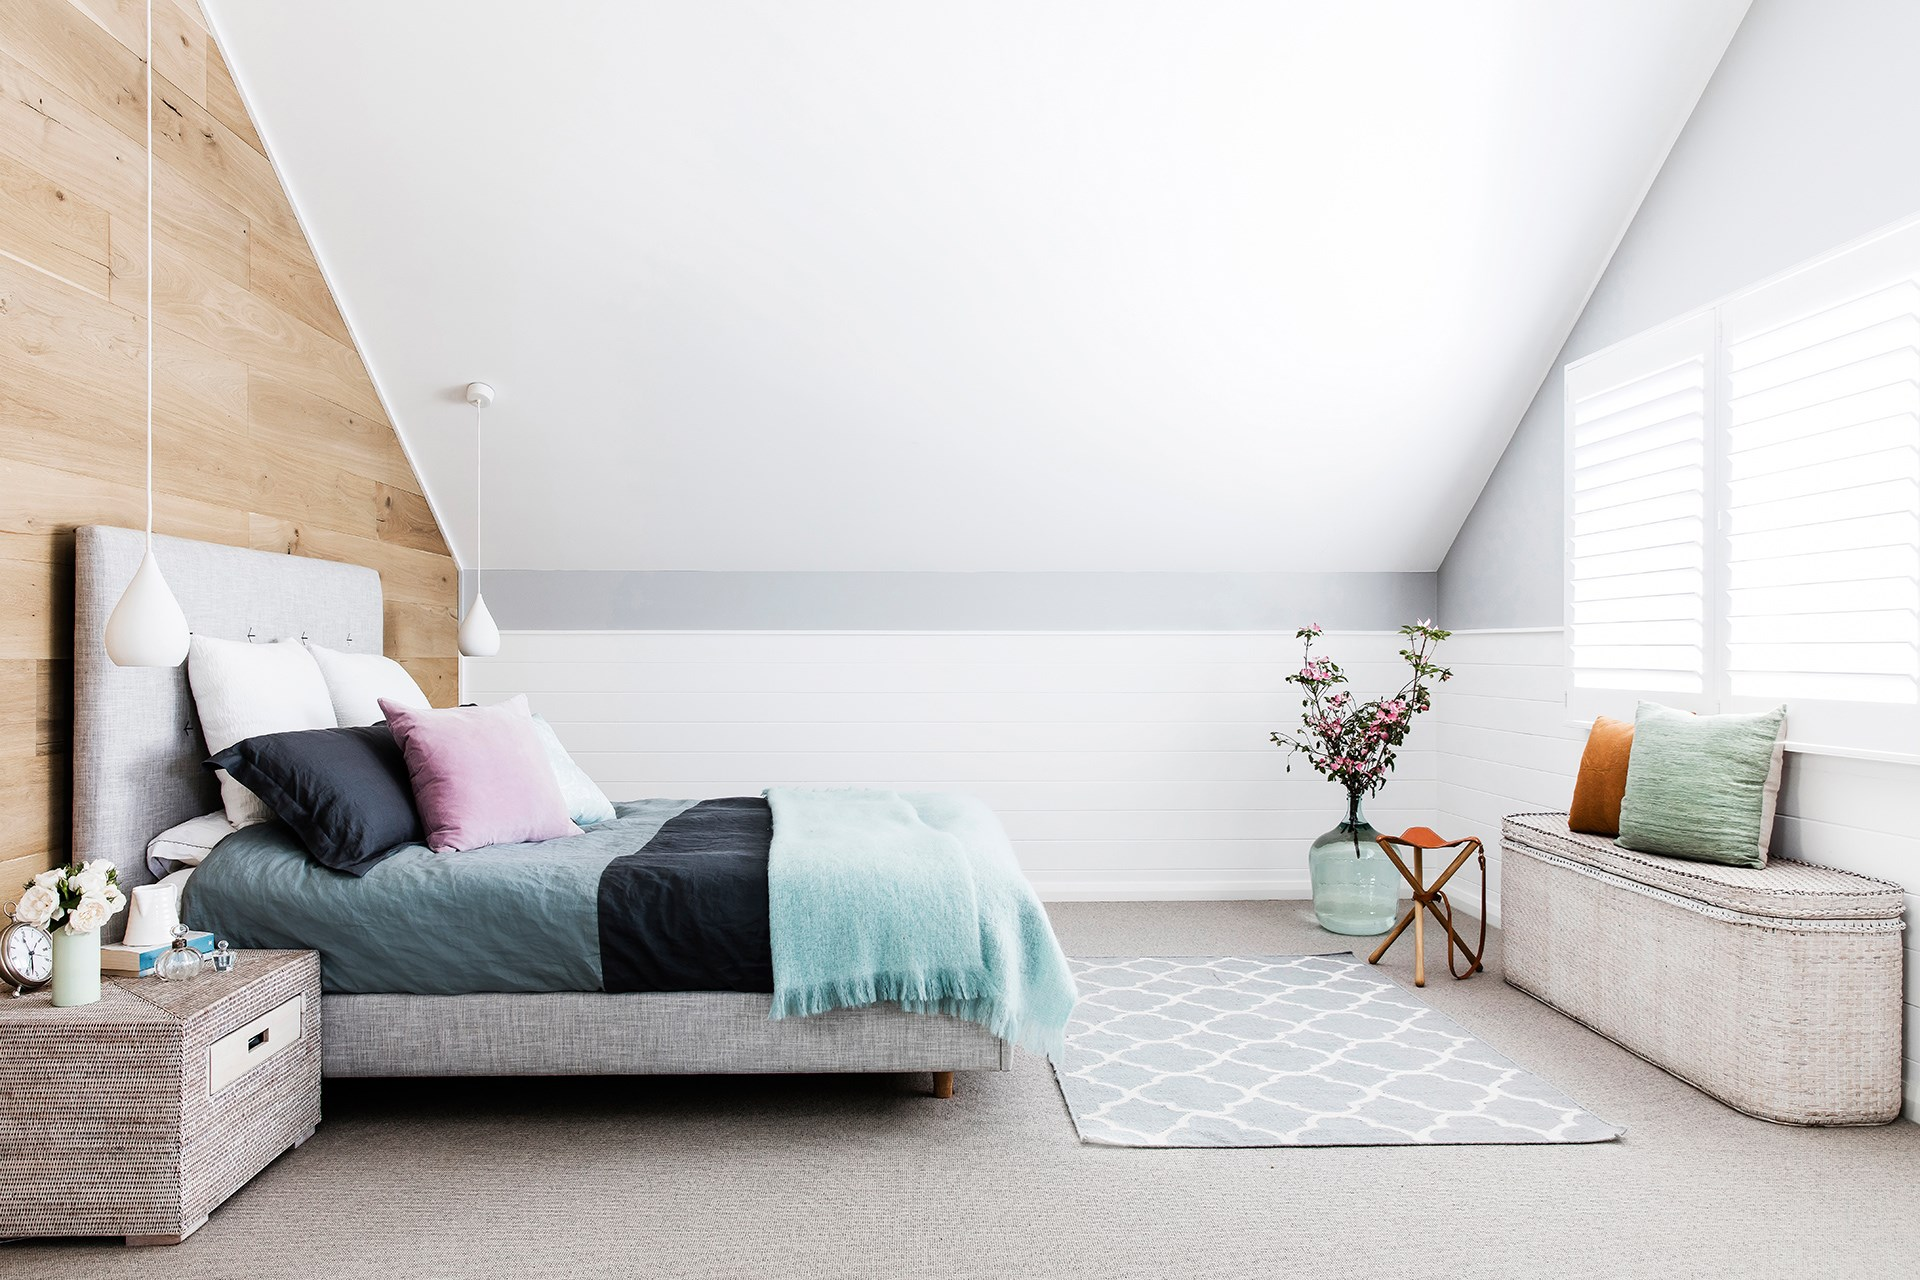 Having a plain colour base in your bedroom means your personality can shine through with your styling. Photo: Alana Landsberry / bauersyndication.com.au